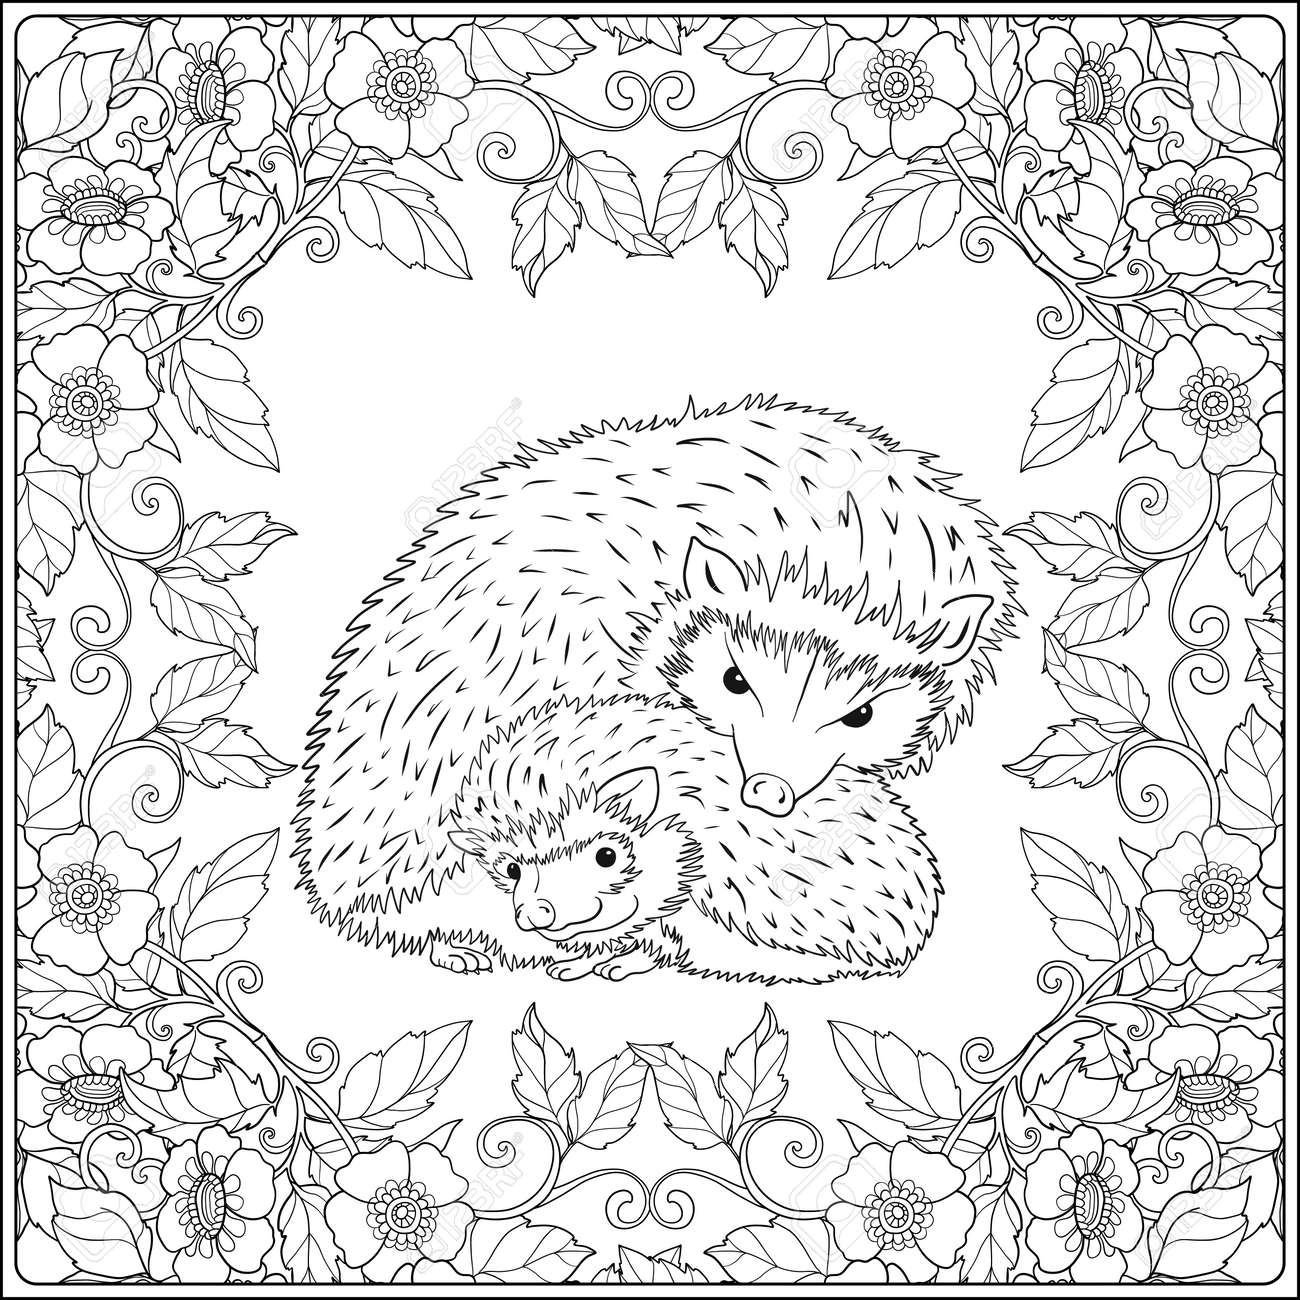 Coloring Page With Lovely Mother Hedgehog And Her Small In The Garden Book